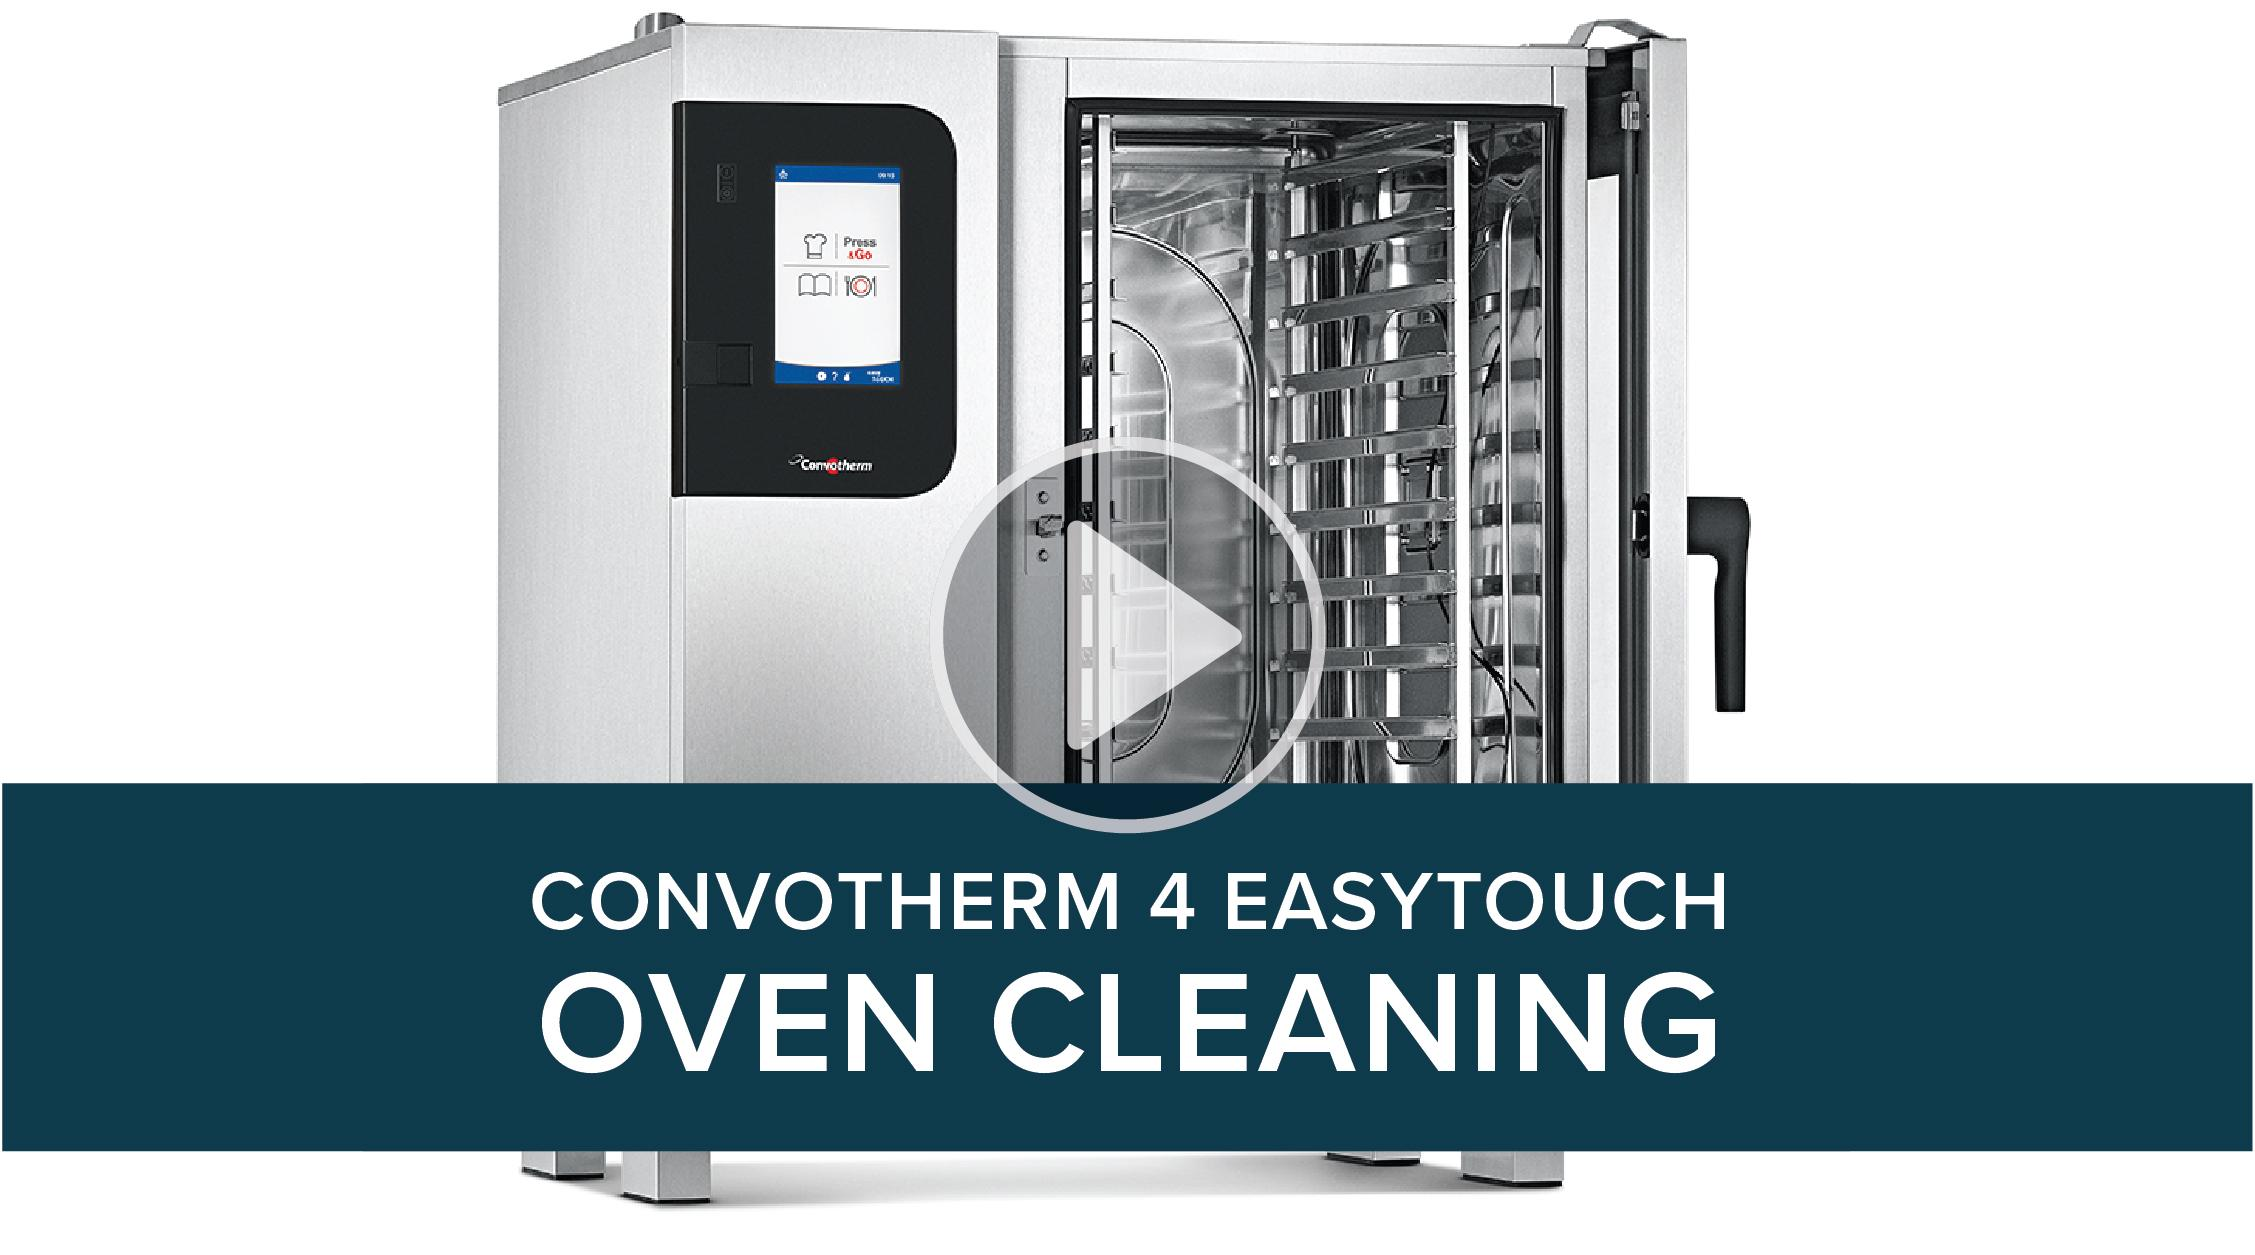 Convotherm 4 easyTouch Cleaning Process